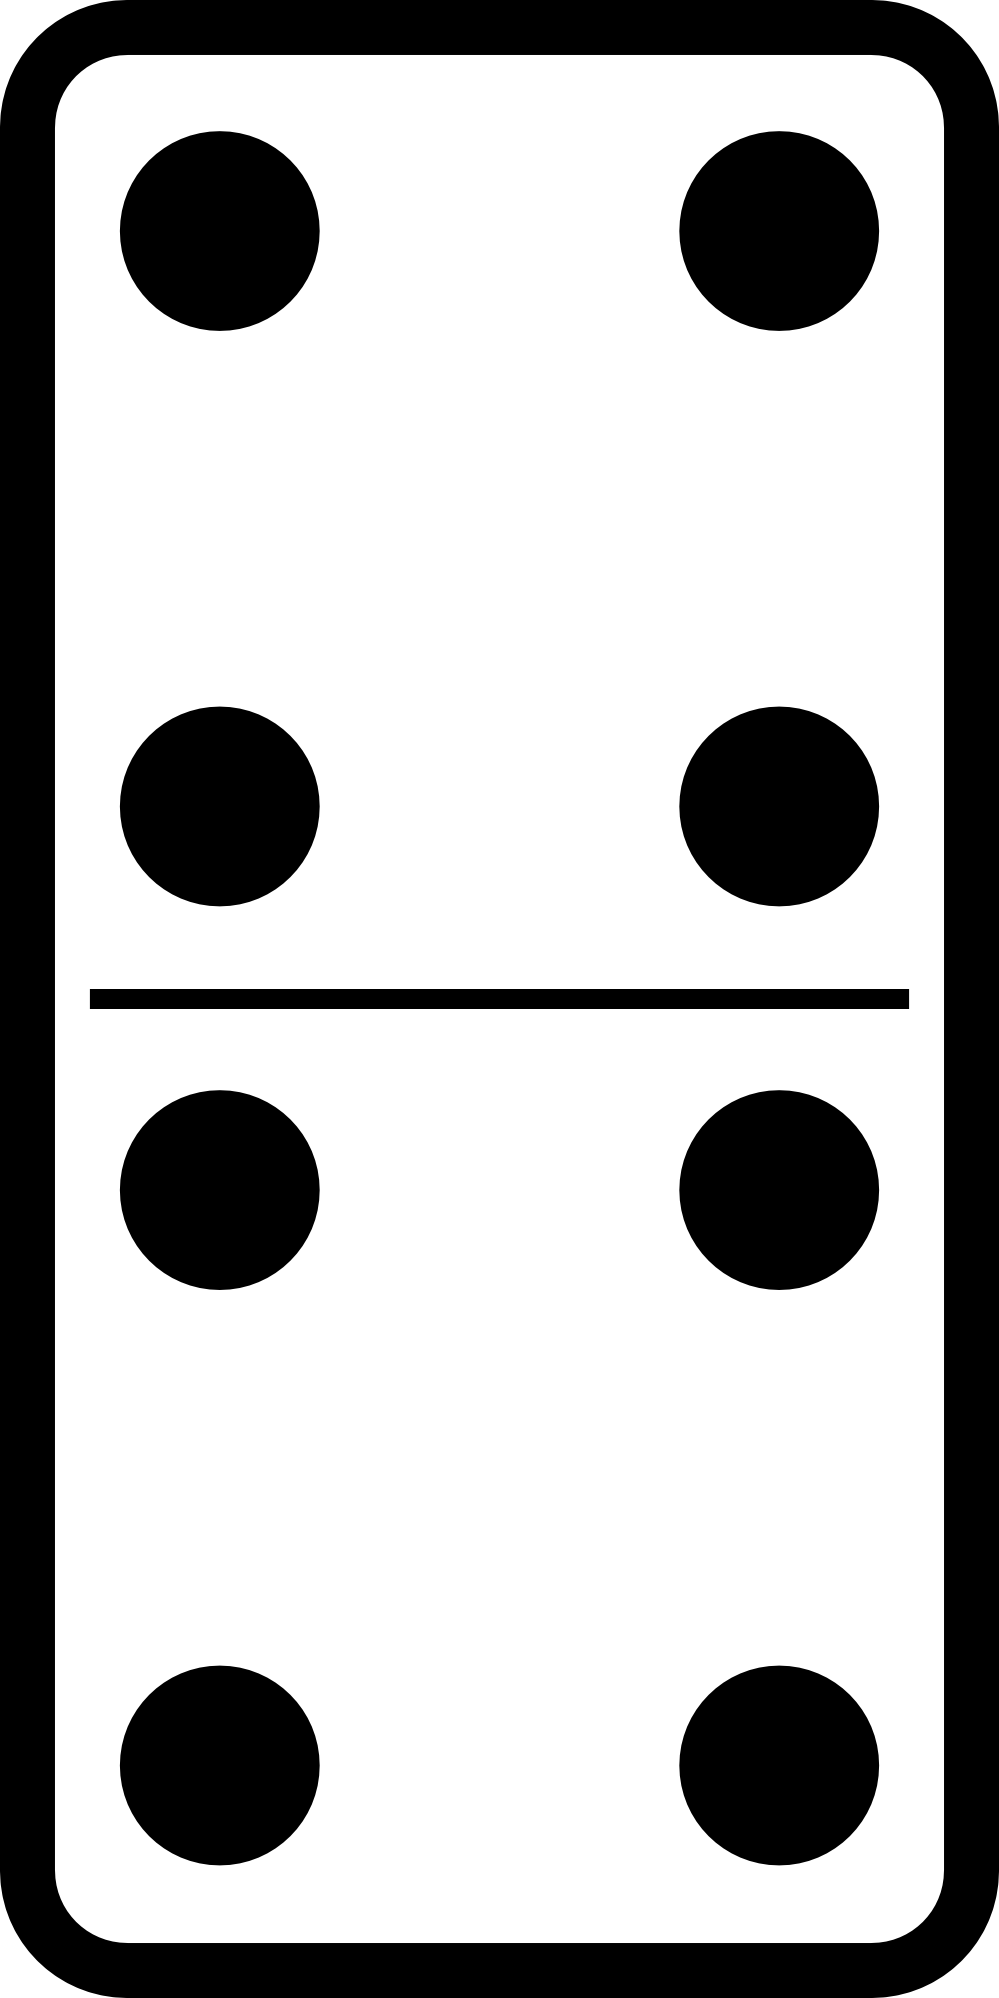 domino set black white line art Coloring Book Colouring Sheet.